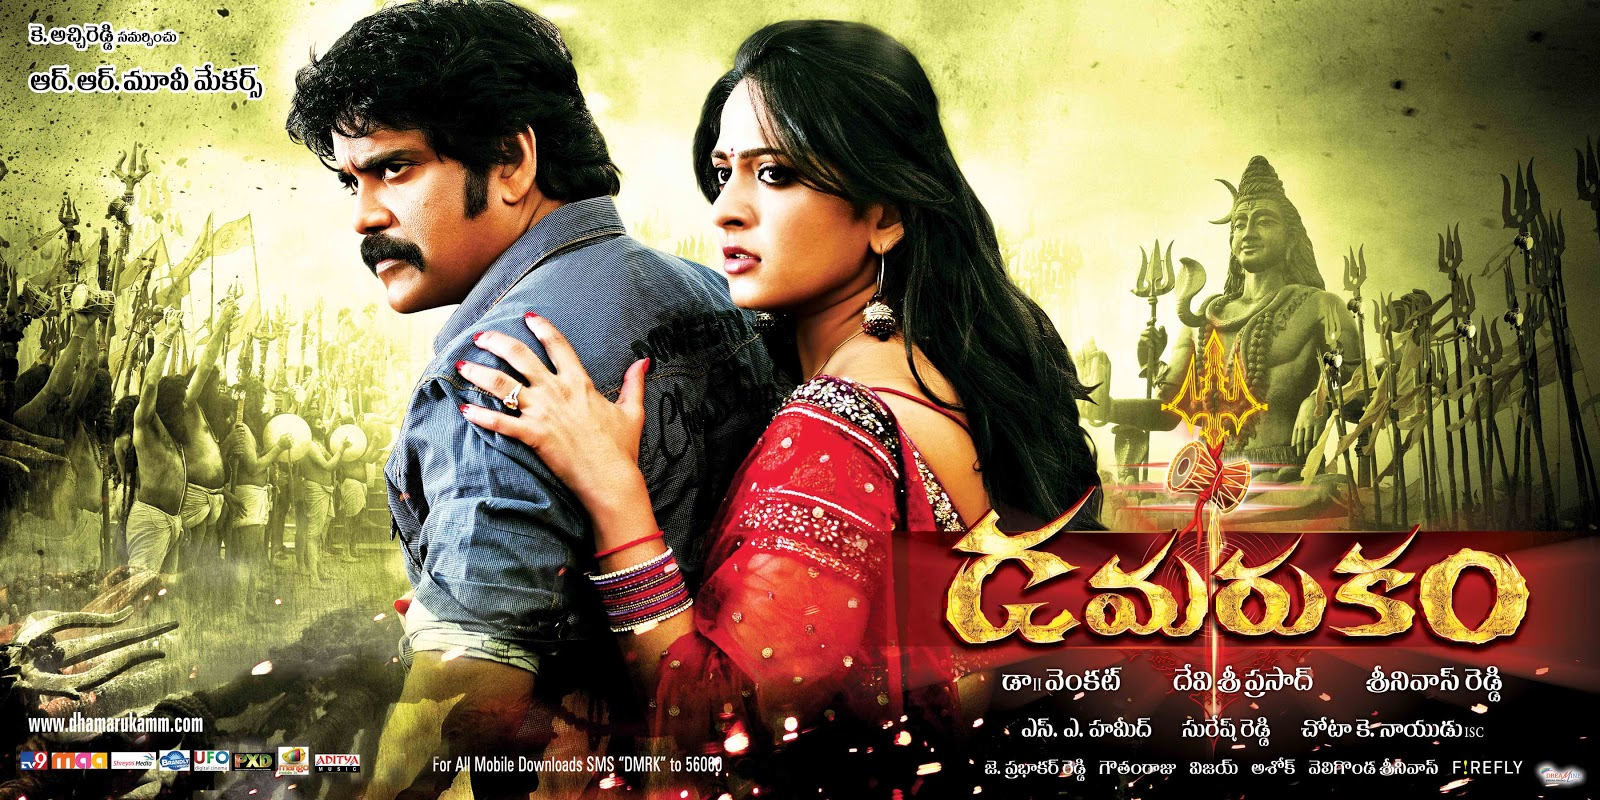 Laali Laali Song Lyrics From Damarukam (2012) | Telugu Movie